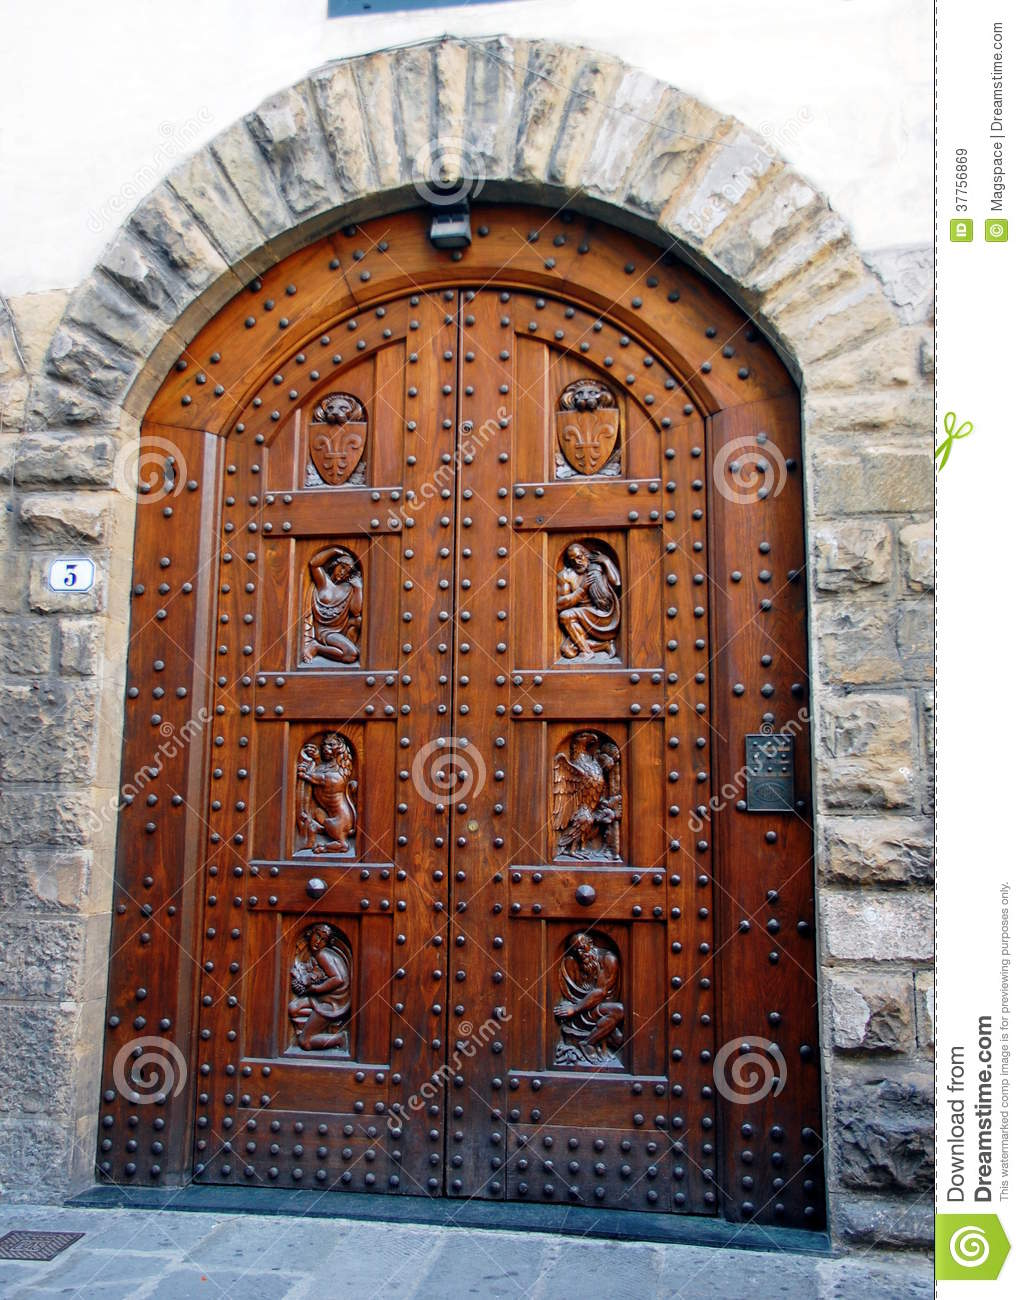 1300 #783A21 Beautiful Wooden Antique Door In Florence House Italy. image Beautiful Wooden Doors 46731024